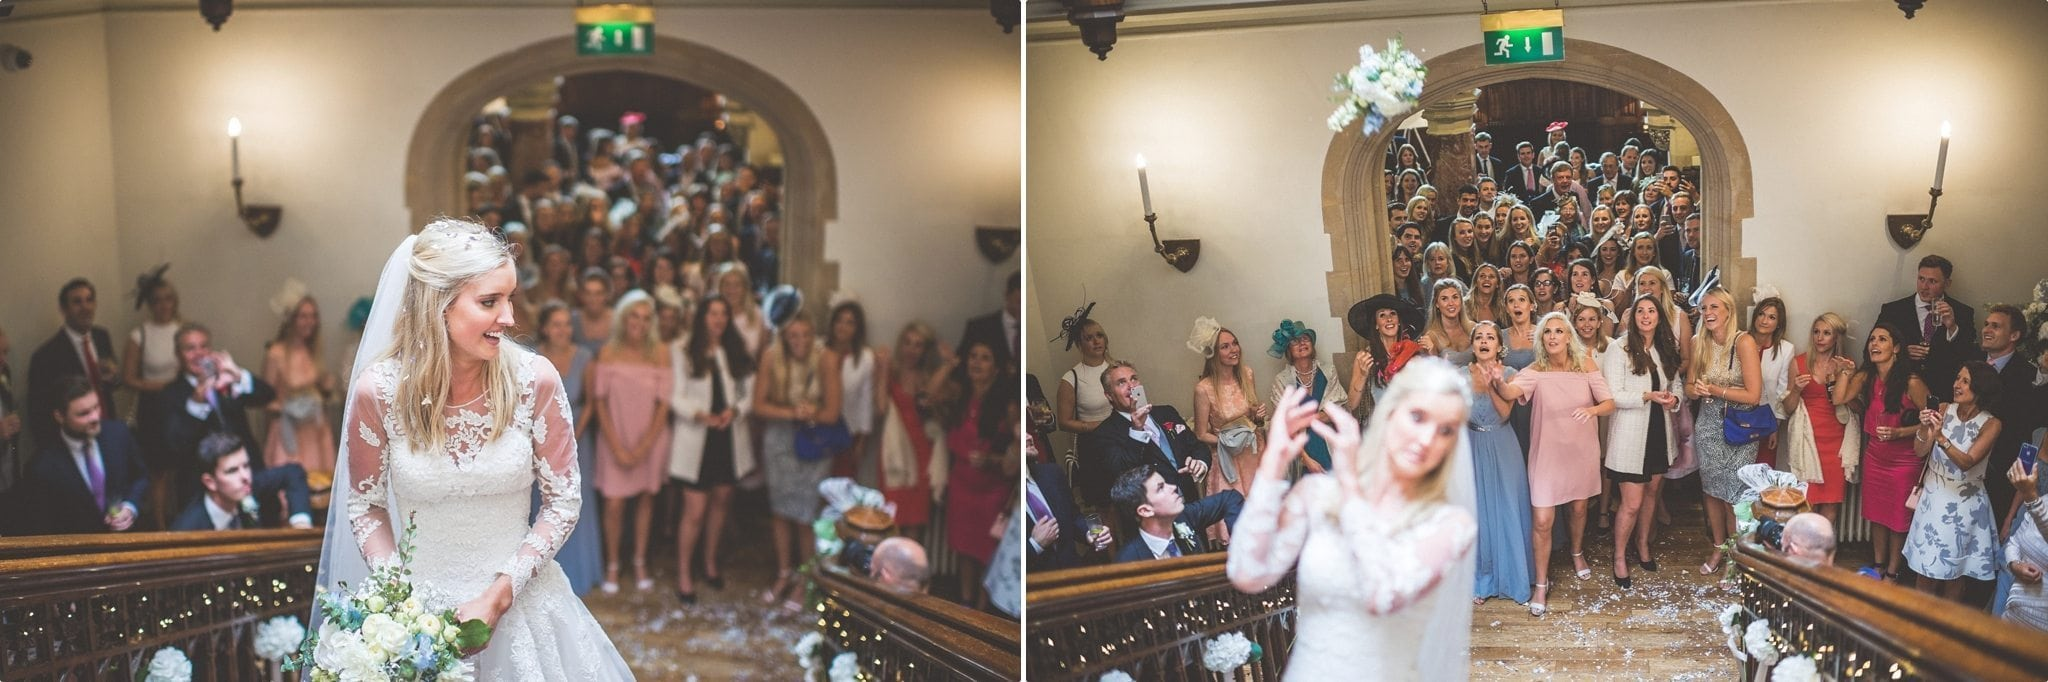 st-audries-park-wedding-maria-assia-photography-470